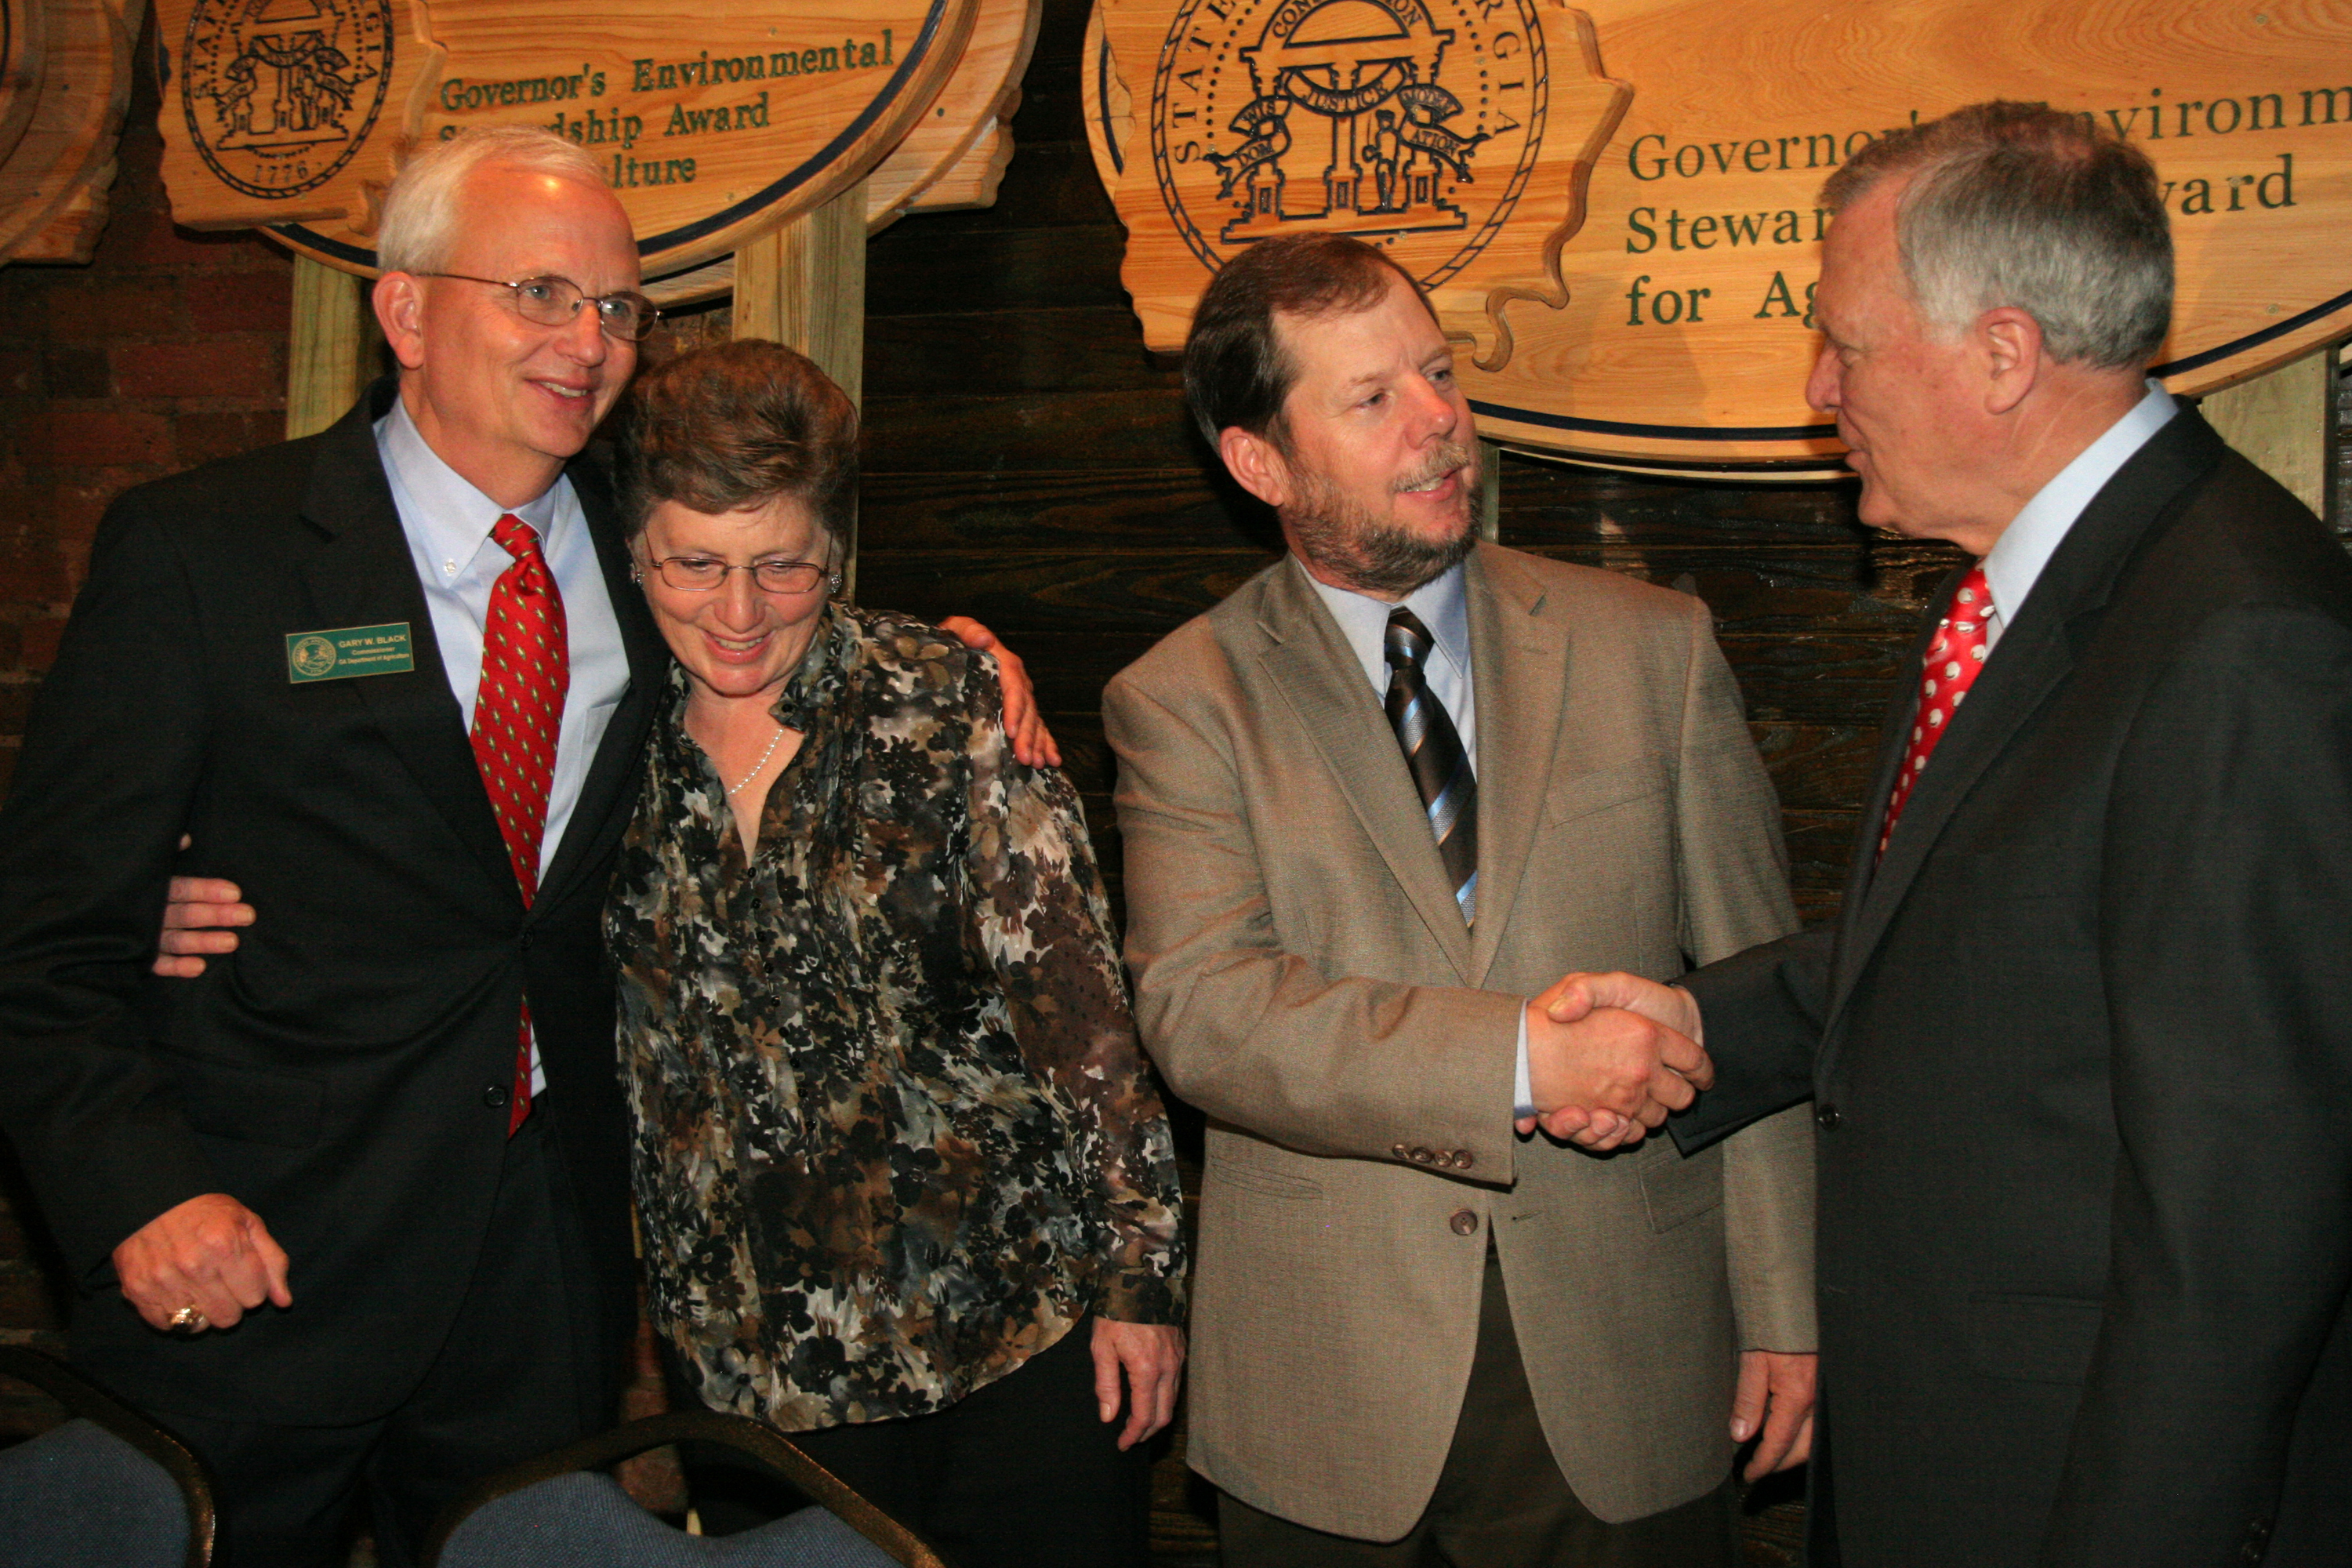 Everett Williams, middle right, is congratulated by Georgia Gov. Nathan Deal, right, after winning the 2011 Georgia Environmental Stewardship Award on March 22 at Georgia Ag Day in Atlanta. At left, Carol Williams accepts congratulations from Georgia Agriculture Commissioner Gary Black.